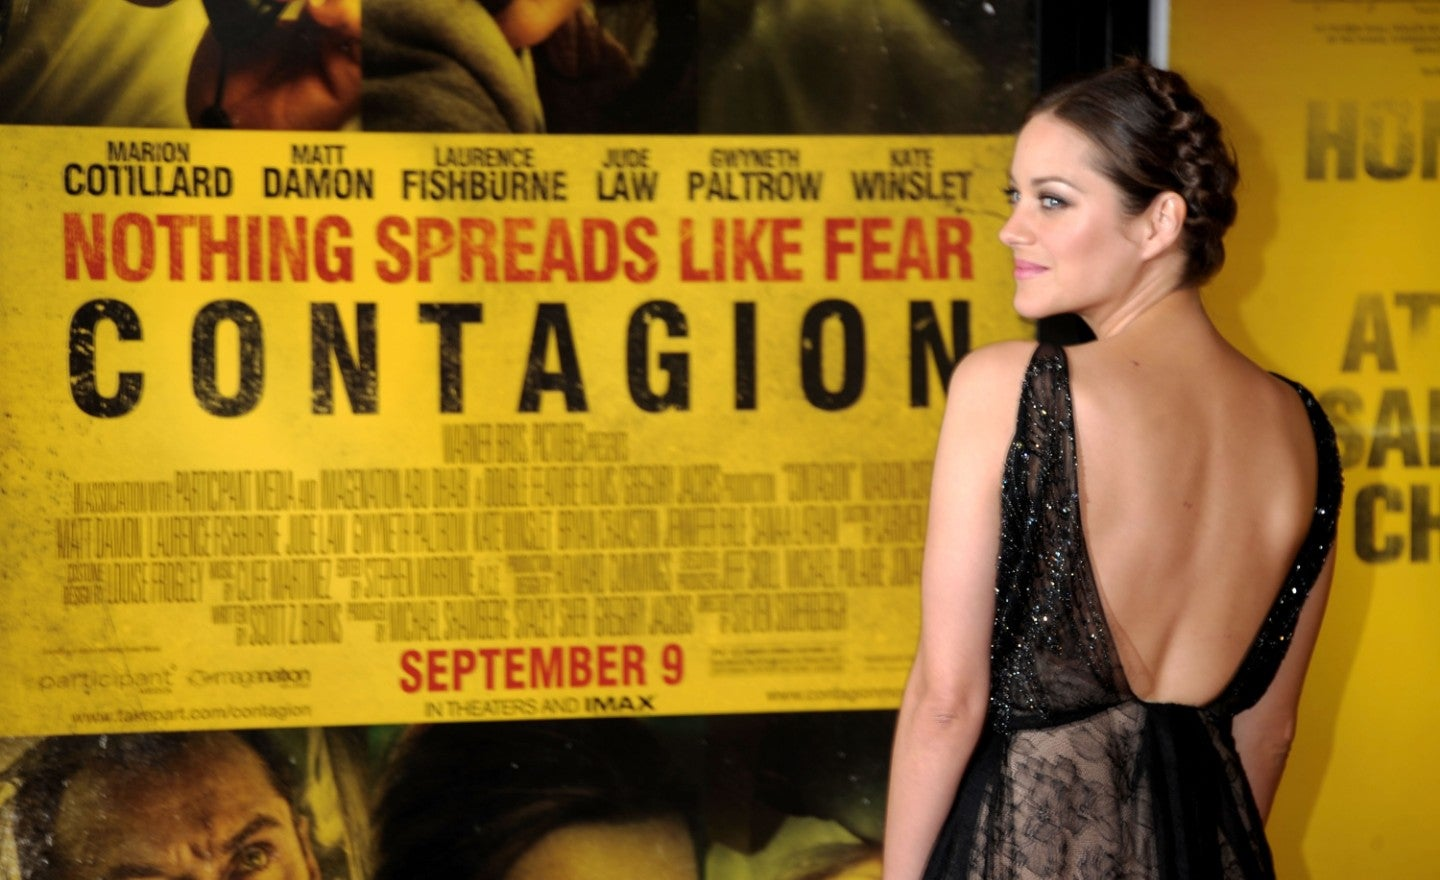 ca_contagionmovie_090711gettyimages